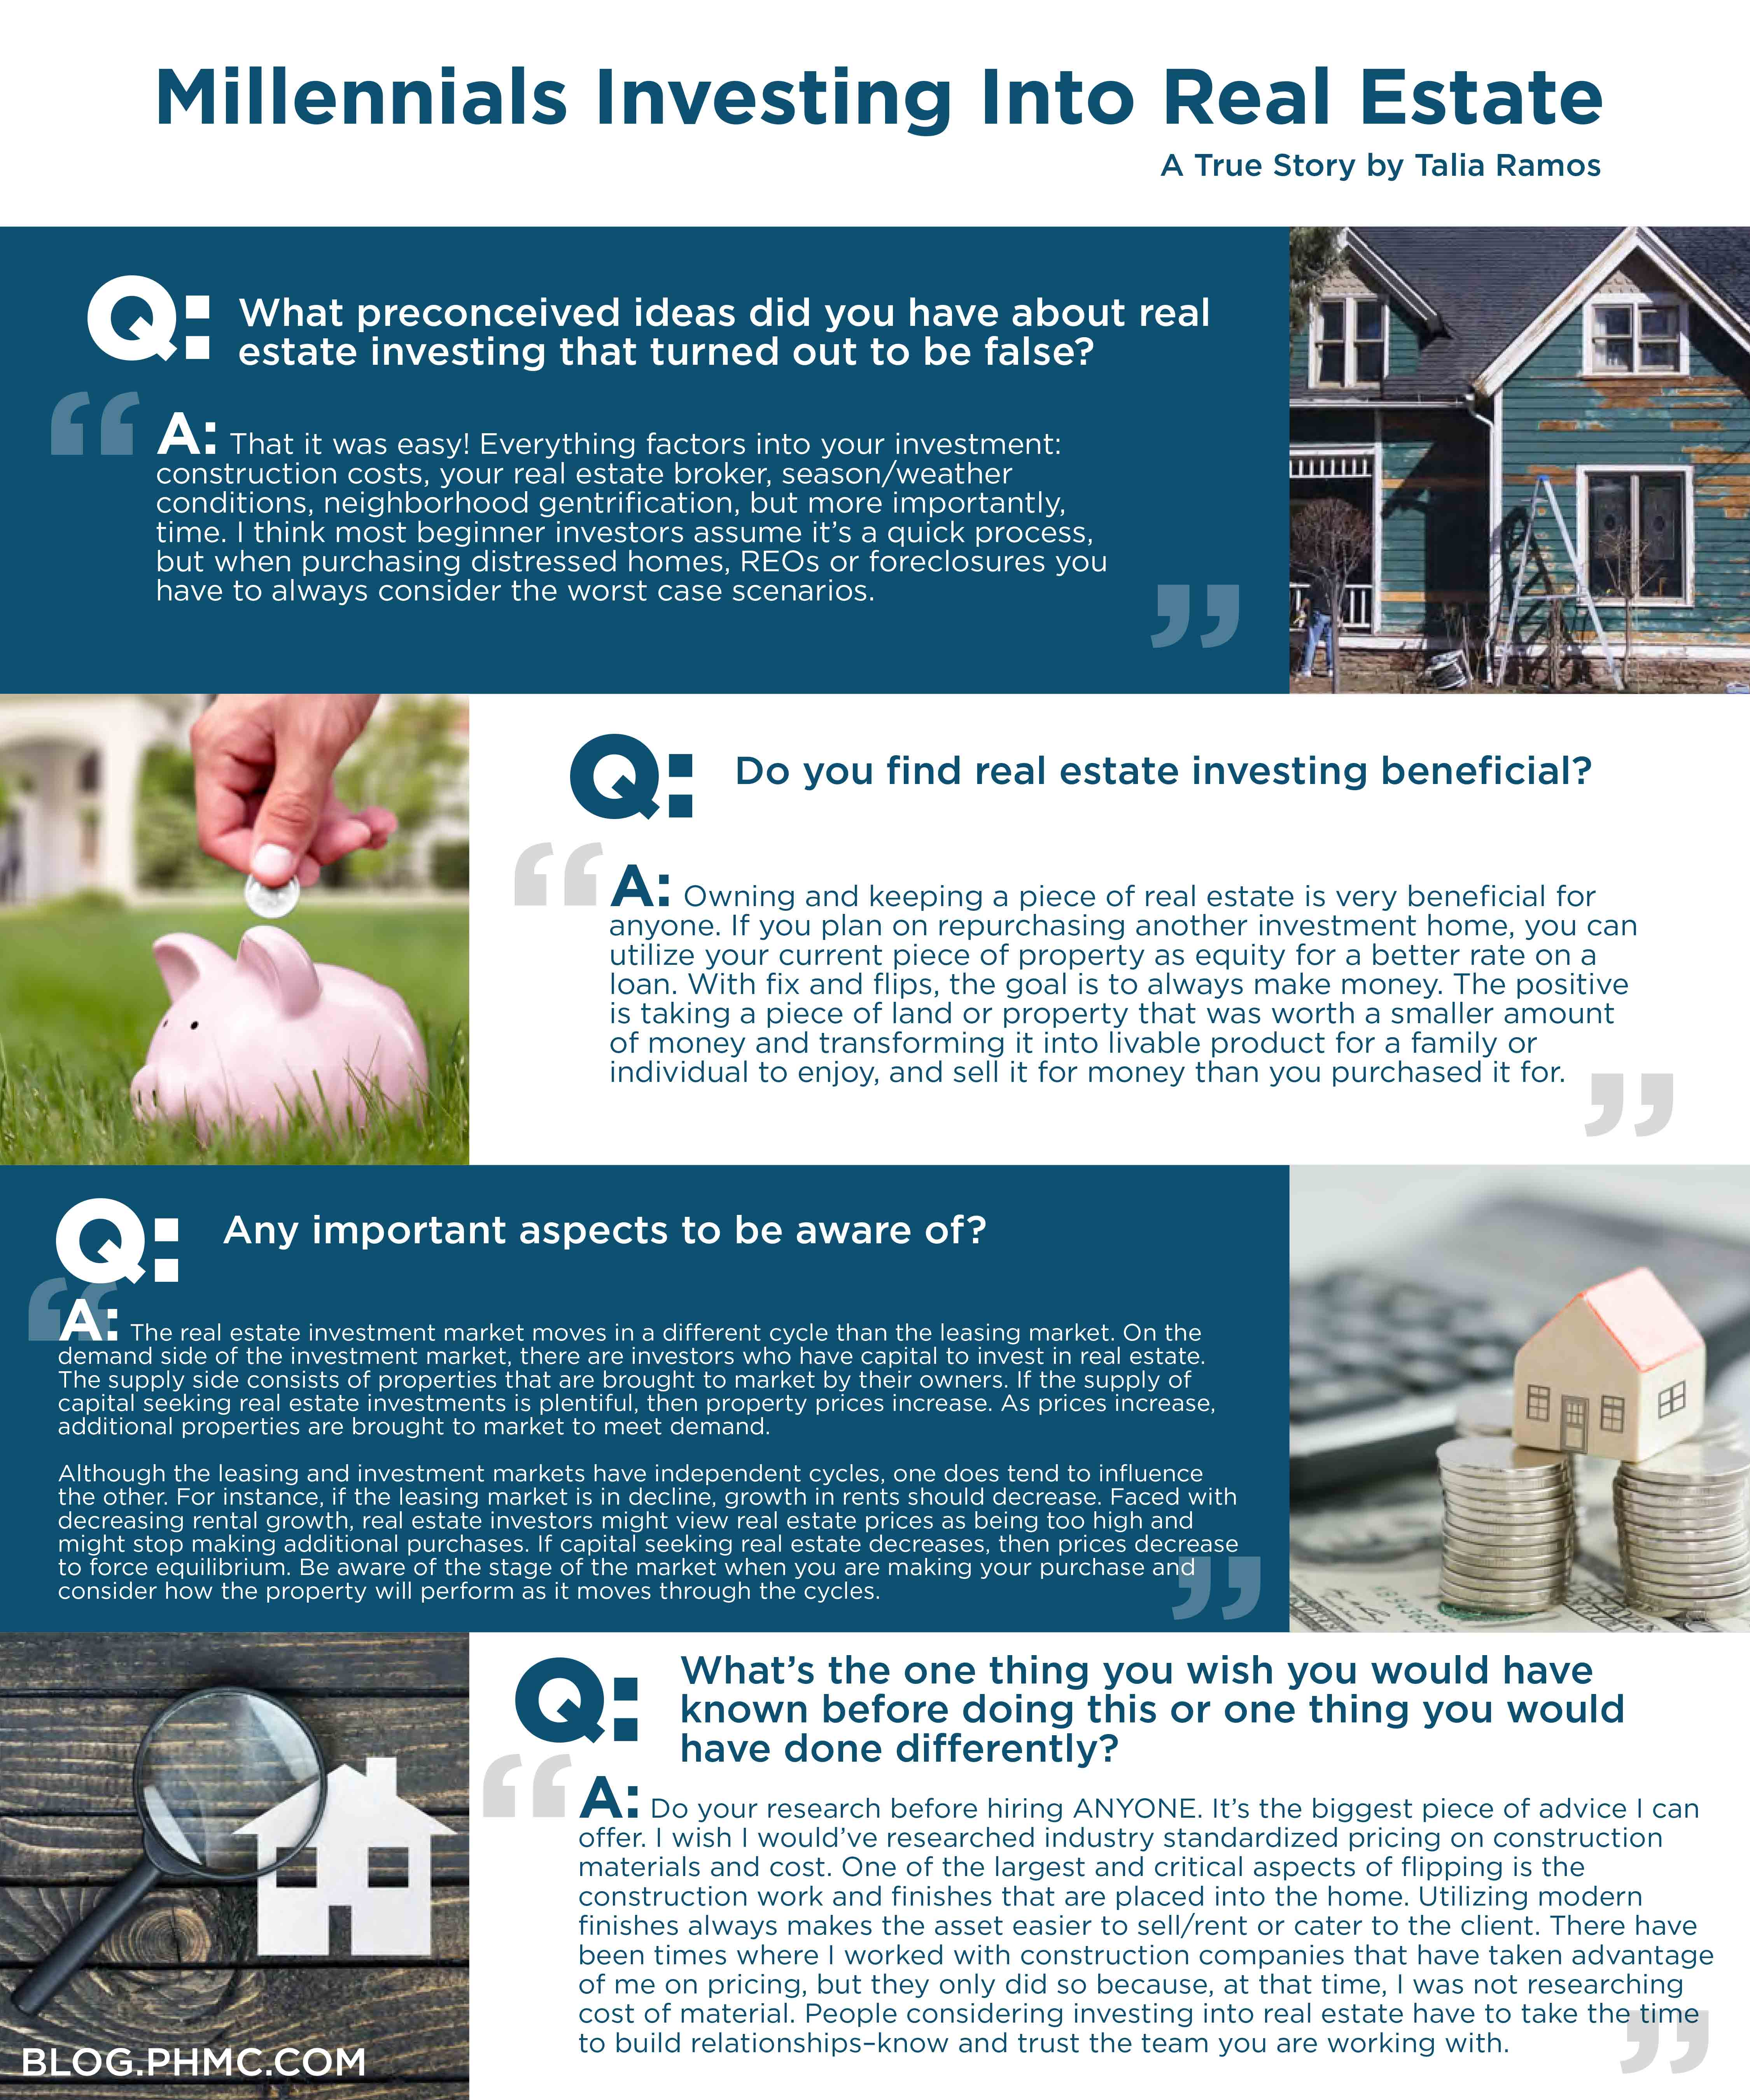 The Millennial generation values investing their money just as important as any other generation. They trust the real estate market more than the stock market. PHMC interviewed Talia Ramos, a millennial independent chicagoland investor to find out how she got started and any tips for other beginner real estate investors. Find this image on blog.phmc.com